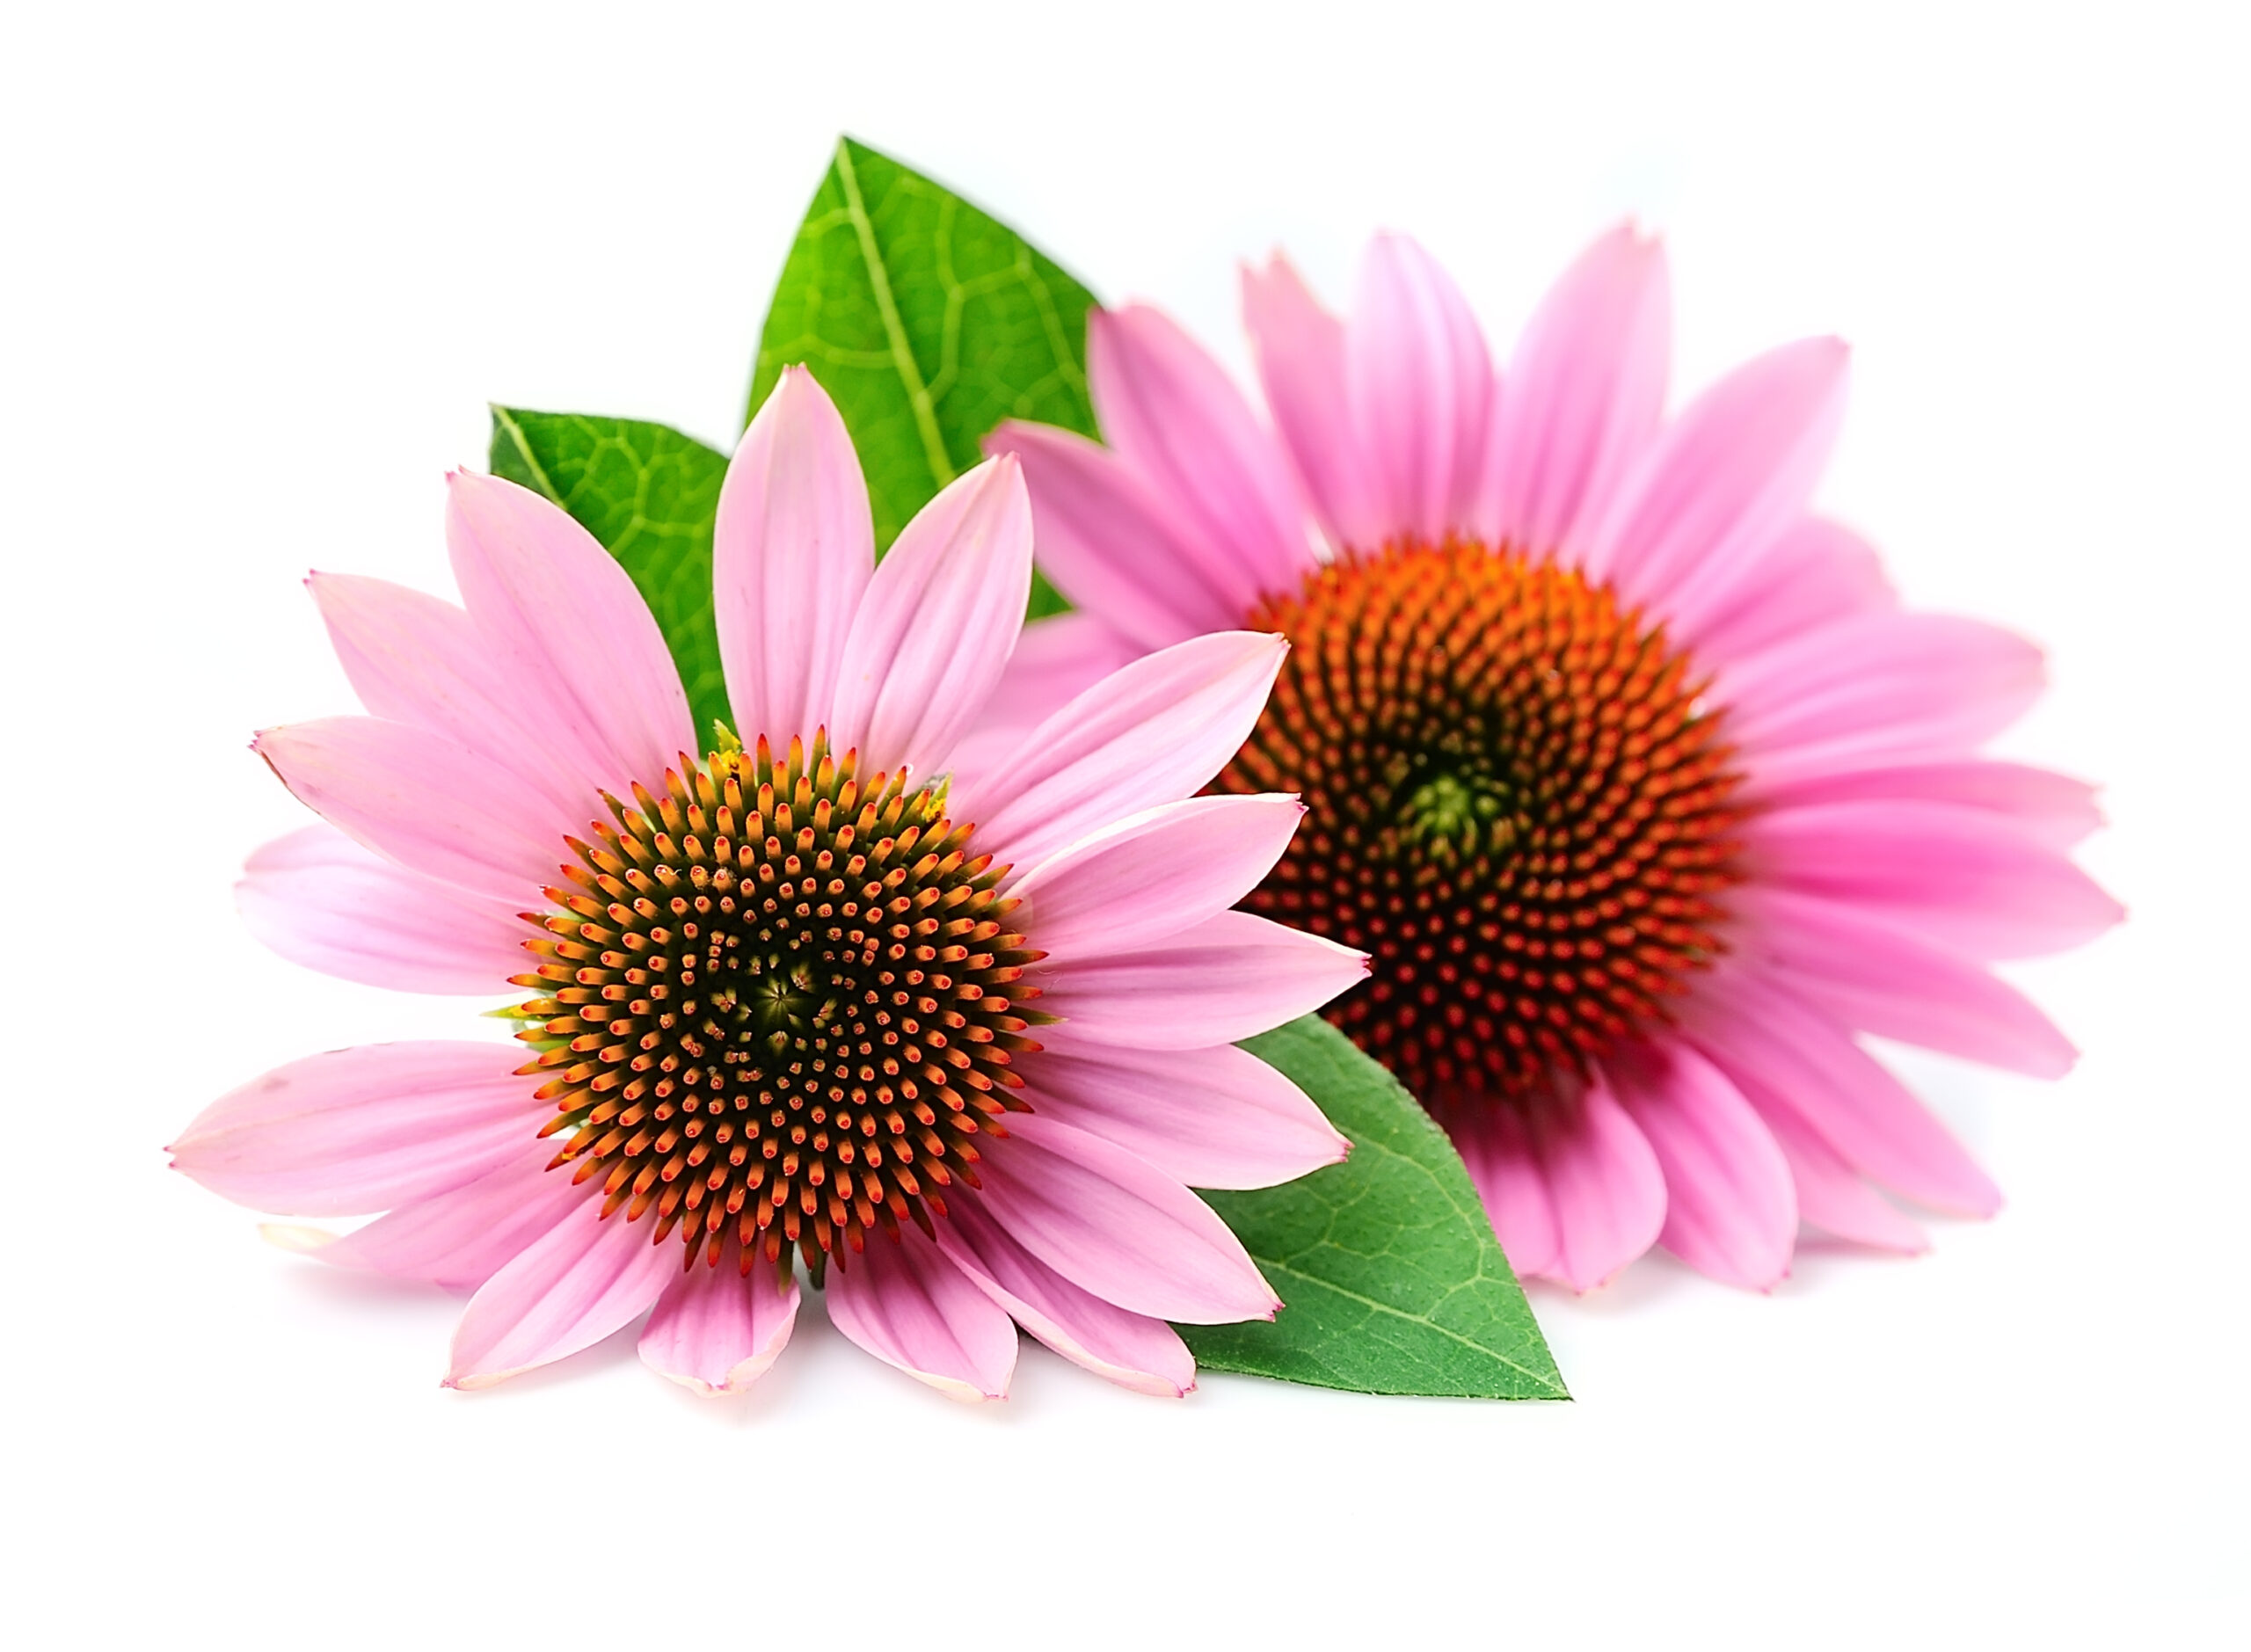 echinacea flowers close up isolated medicinal plant scaled